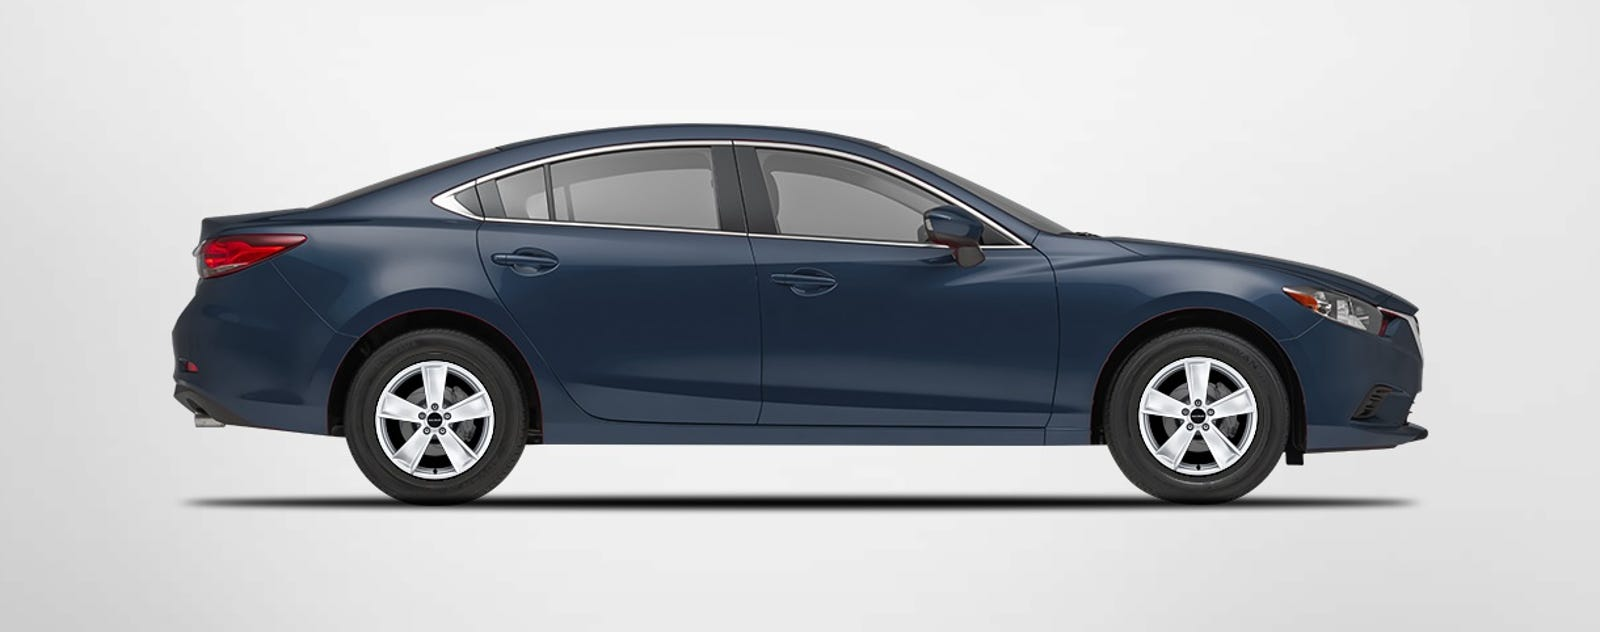 Current gen Mazda 6 with 16-inch Radius W102 wheels (OE size is 19)